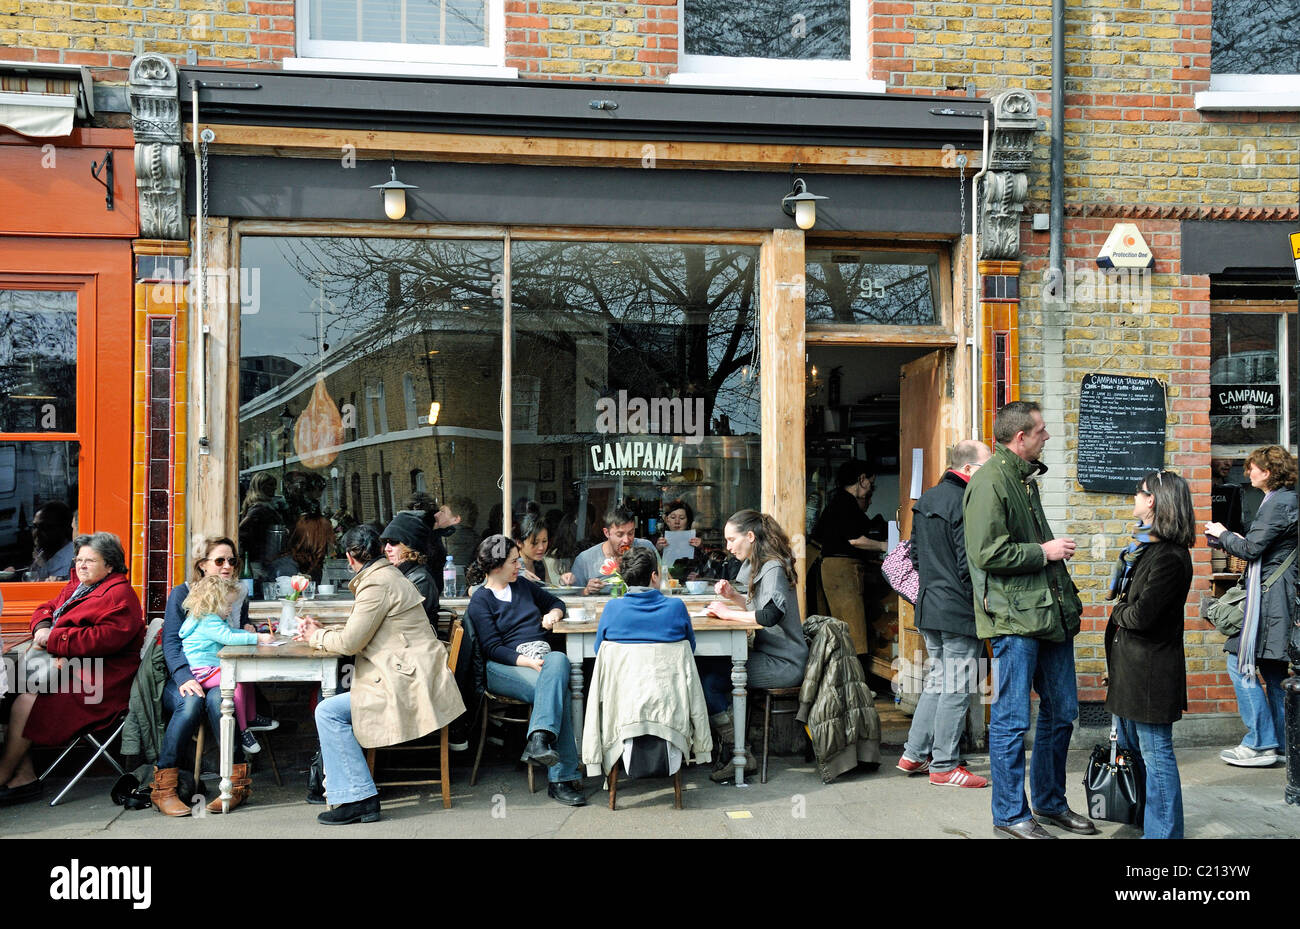 People eating outside Campania Gastronomia restaurant in Columbia Road Flower Market Tower Hamlets London England - Stock Image